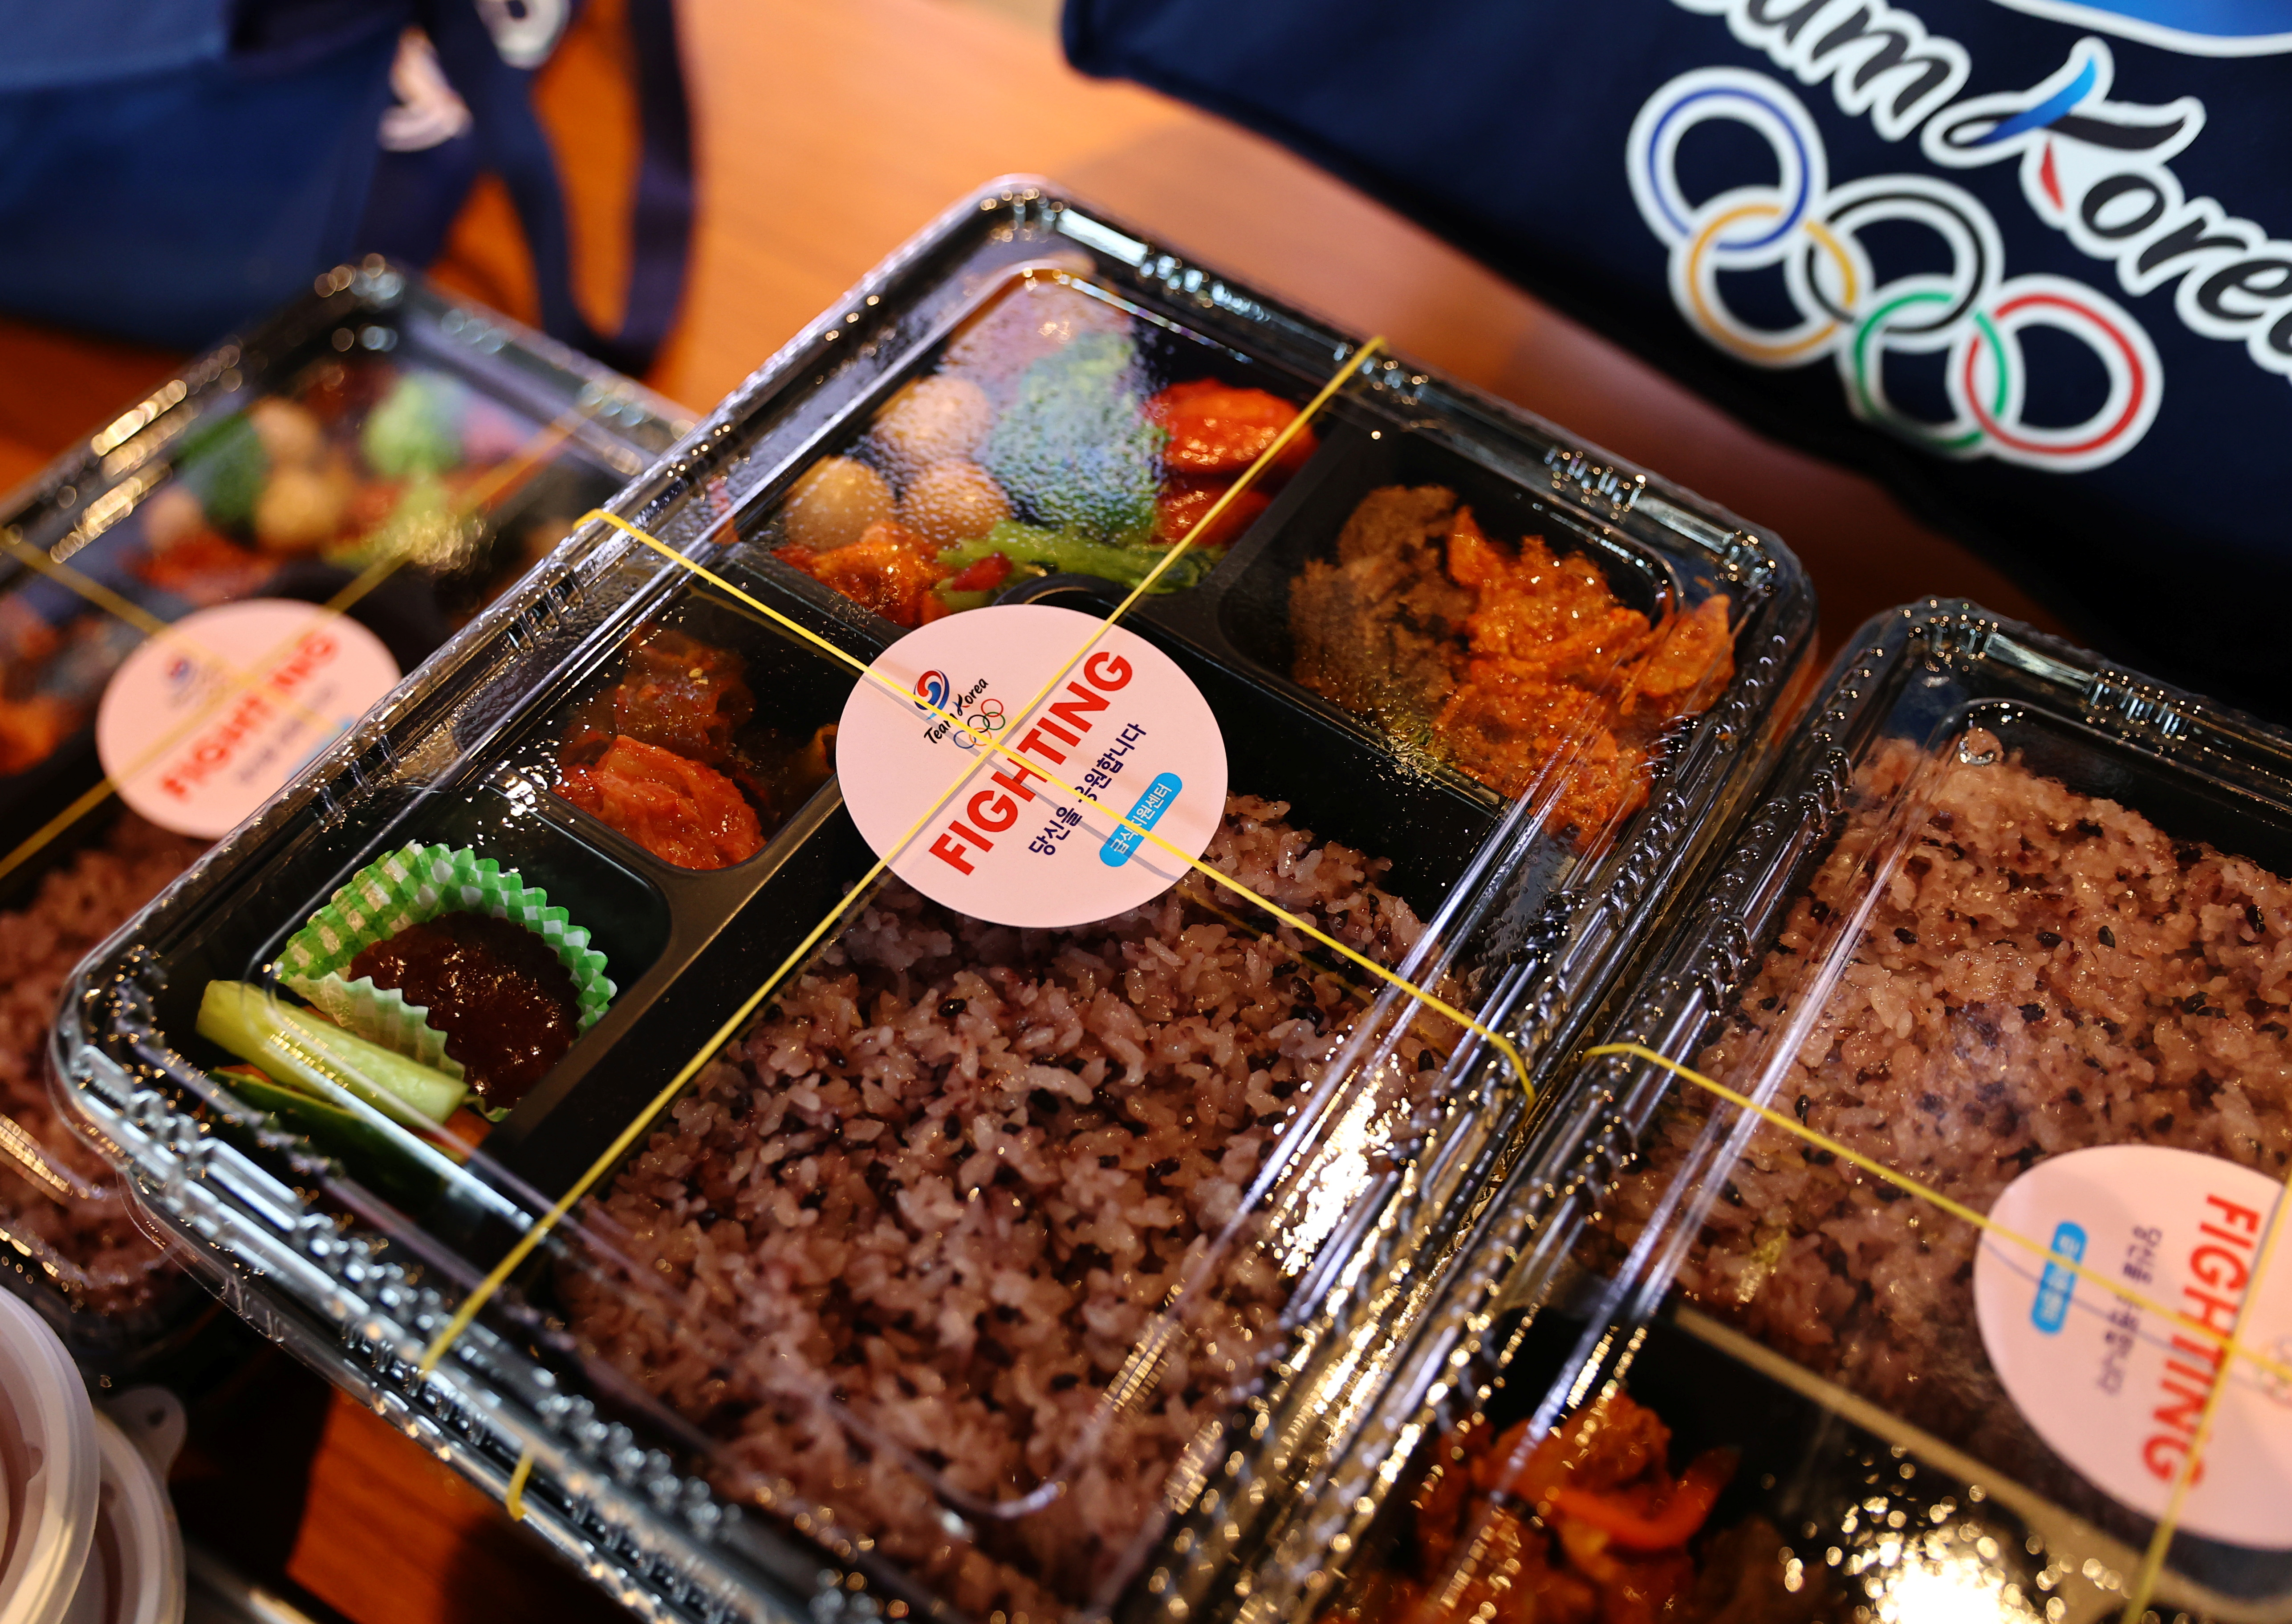 Boxed meals for South Korean Tokyo 2020 Olympic Games athletes are pictured at a hotel in Urayasu, Chiba Prefecture, Japan, July 26, 2021.   REUTERS/Kim Kyung-Hoon